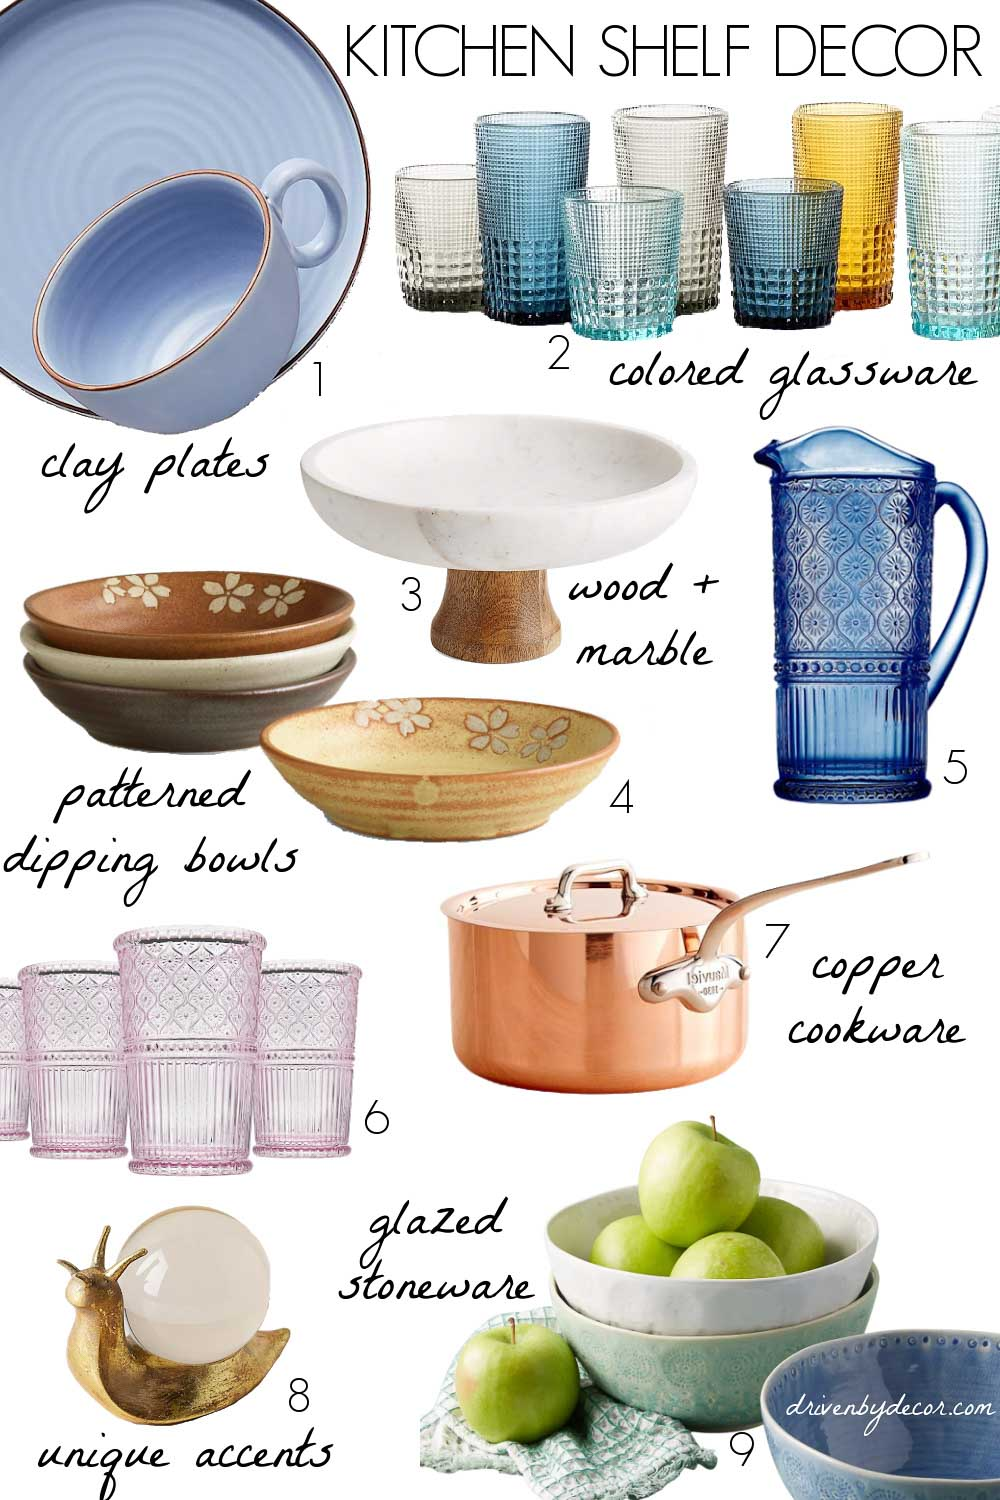 Kitchen shelf decor - colored glassware, clay plates, and copper cookware are trending!